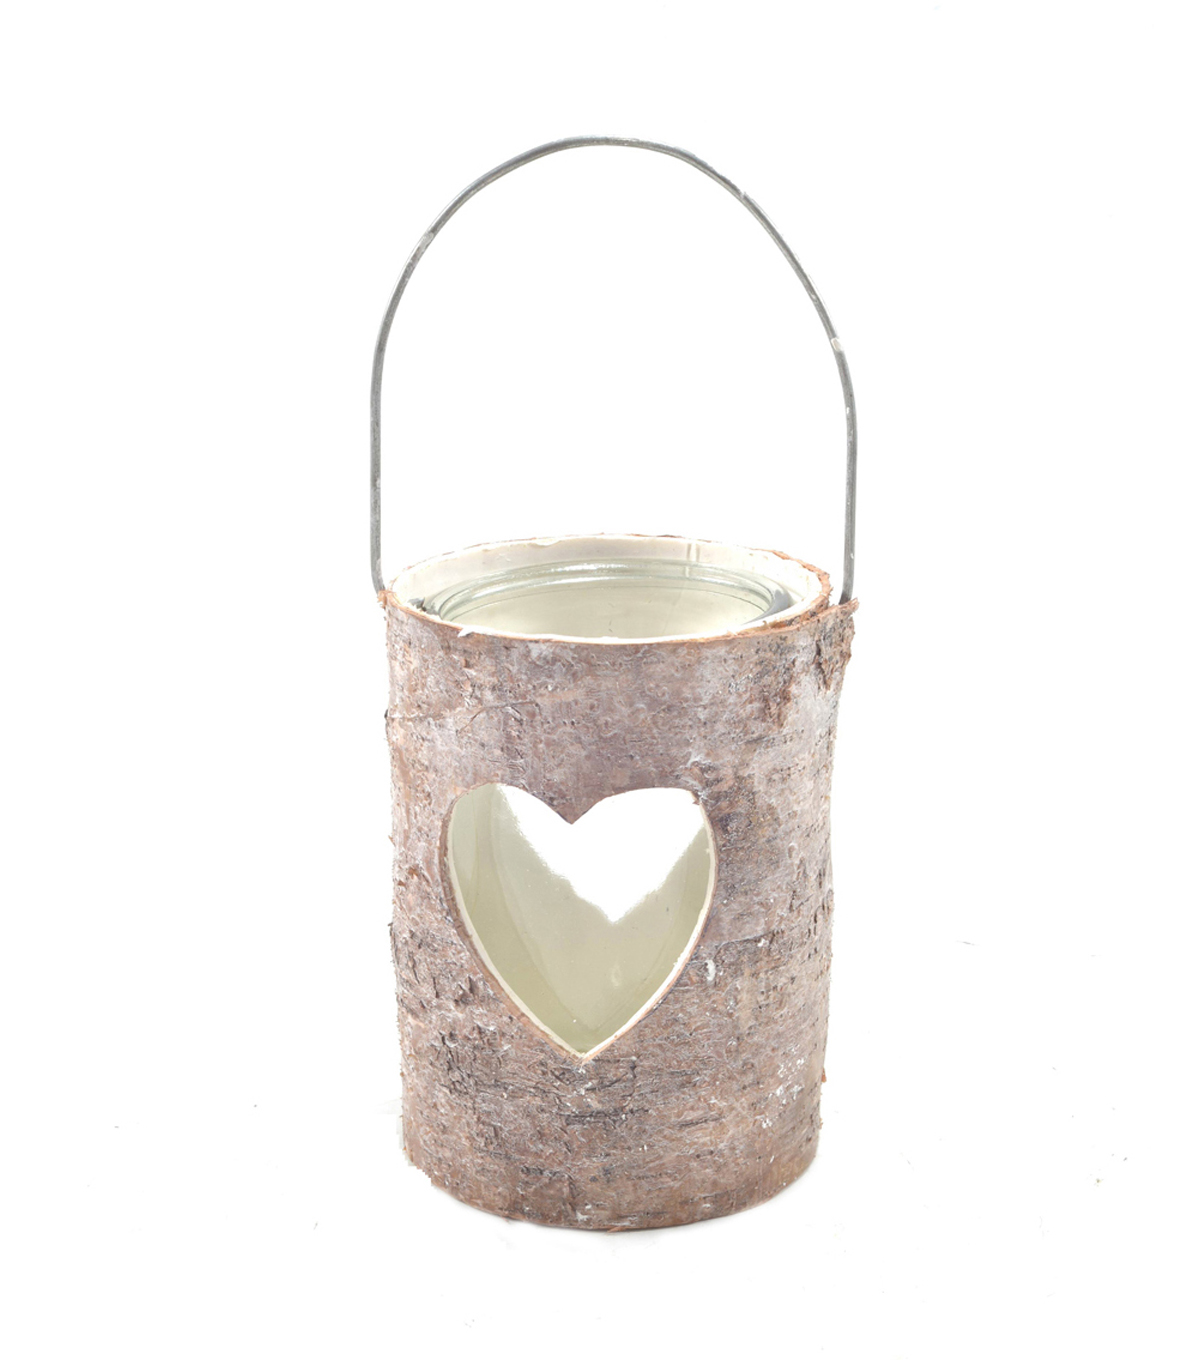 Bloom Room Bark & Glass Candle Holder with Heart